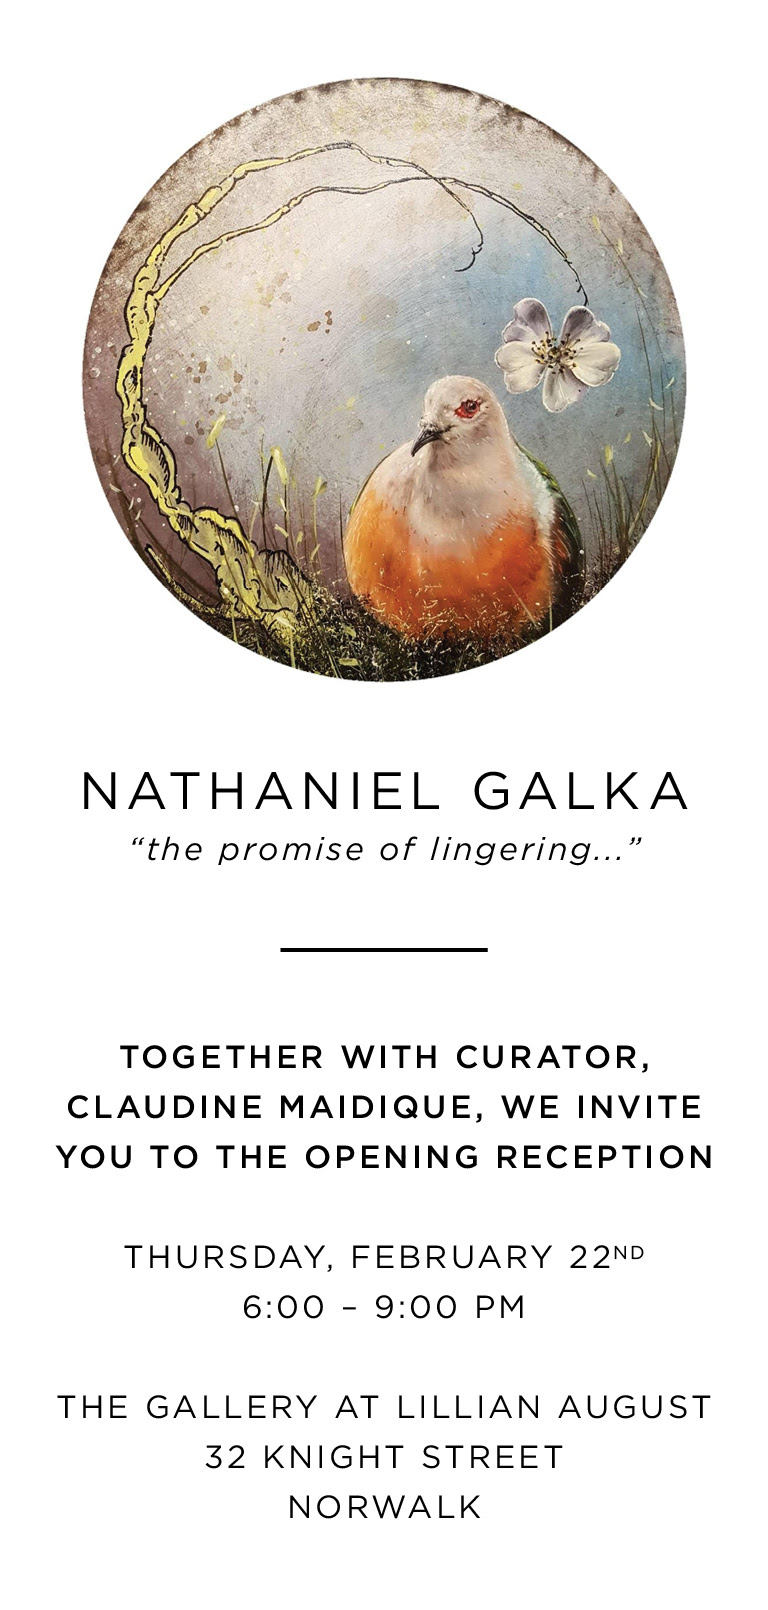 Opening Reception of Nathaniel Galka: The Promise of Lingering at Lillian August